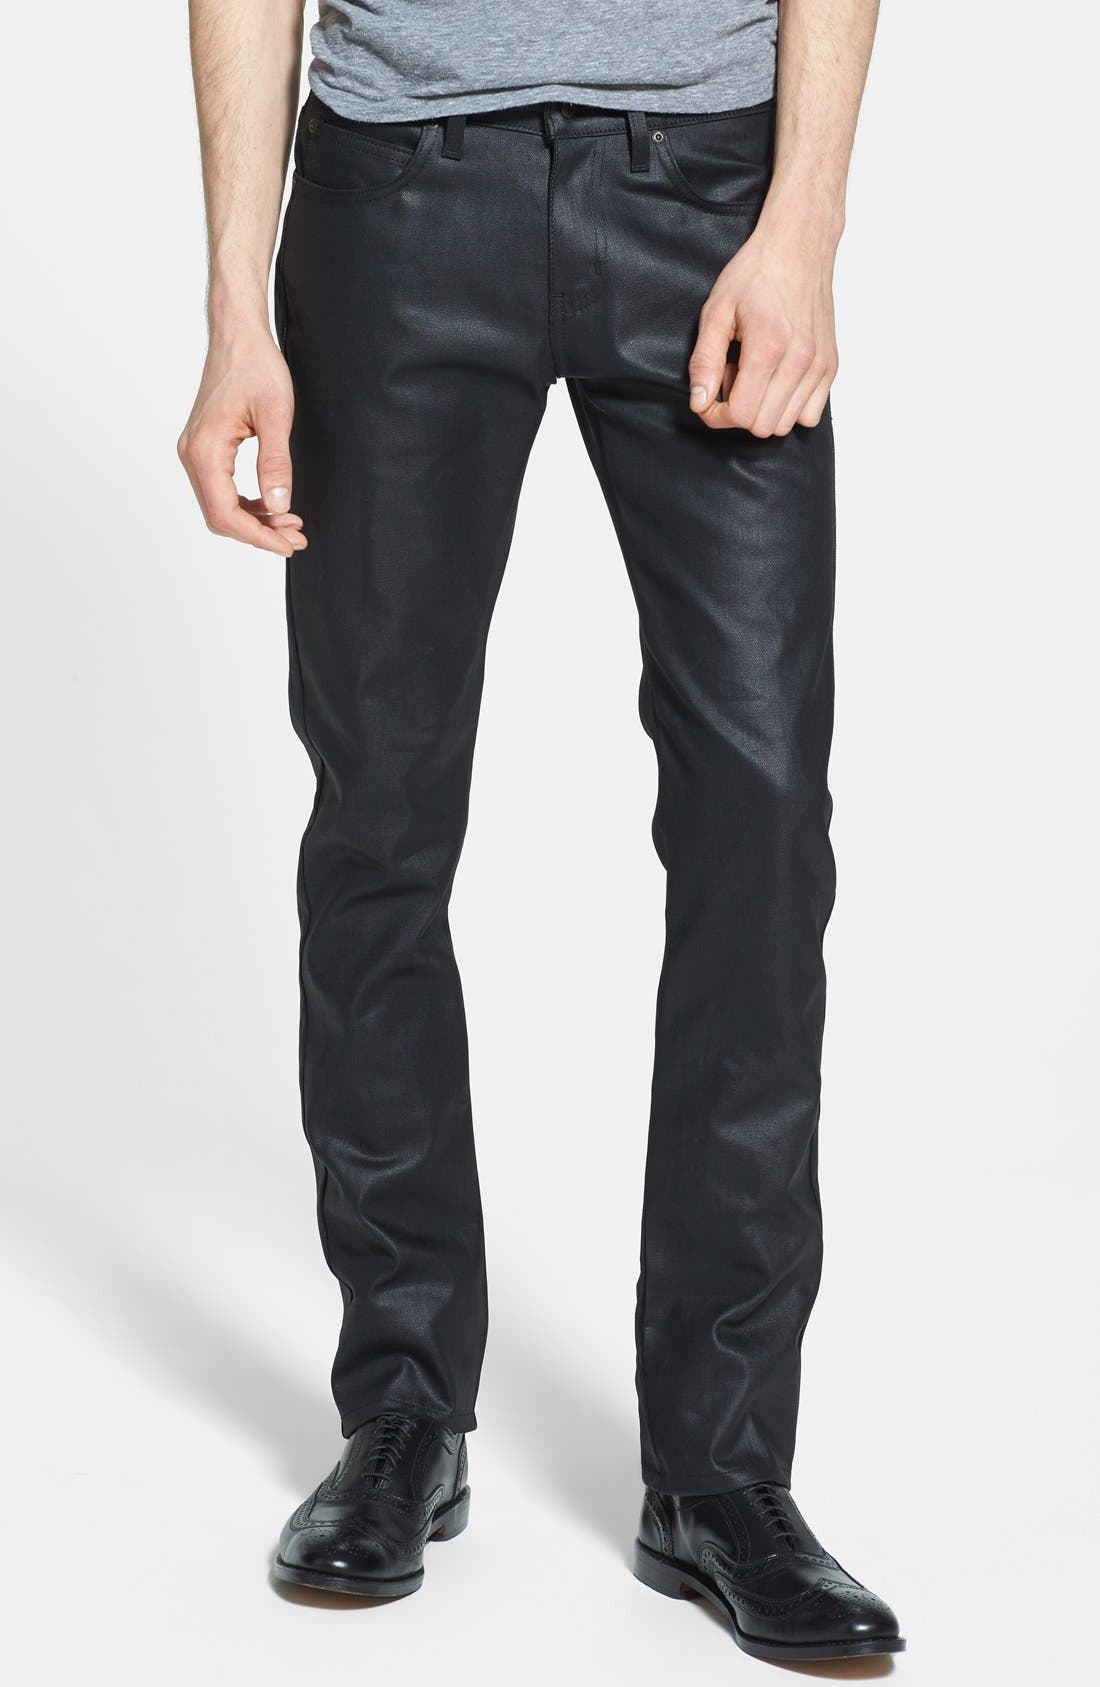 Alternate Image 1 Selected - Naked & Famous Denim 'Skinny Guy' Skinny Fit Jeans (Wax Coated Black Stretch)